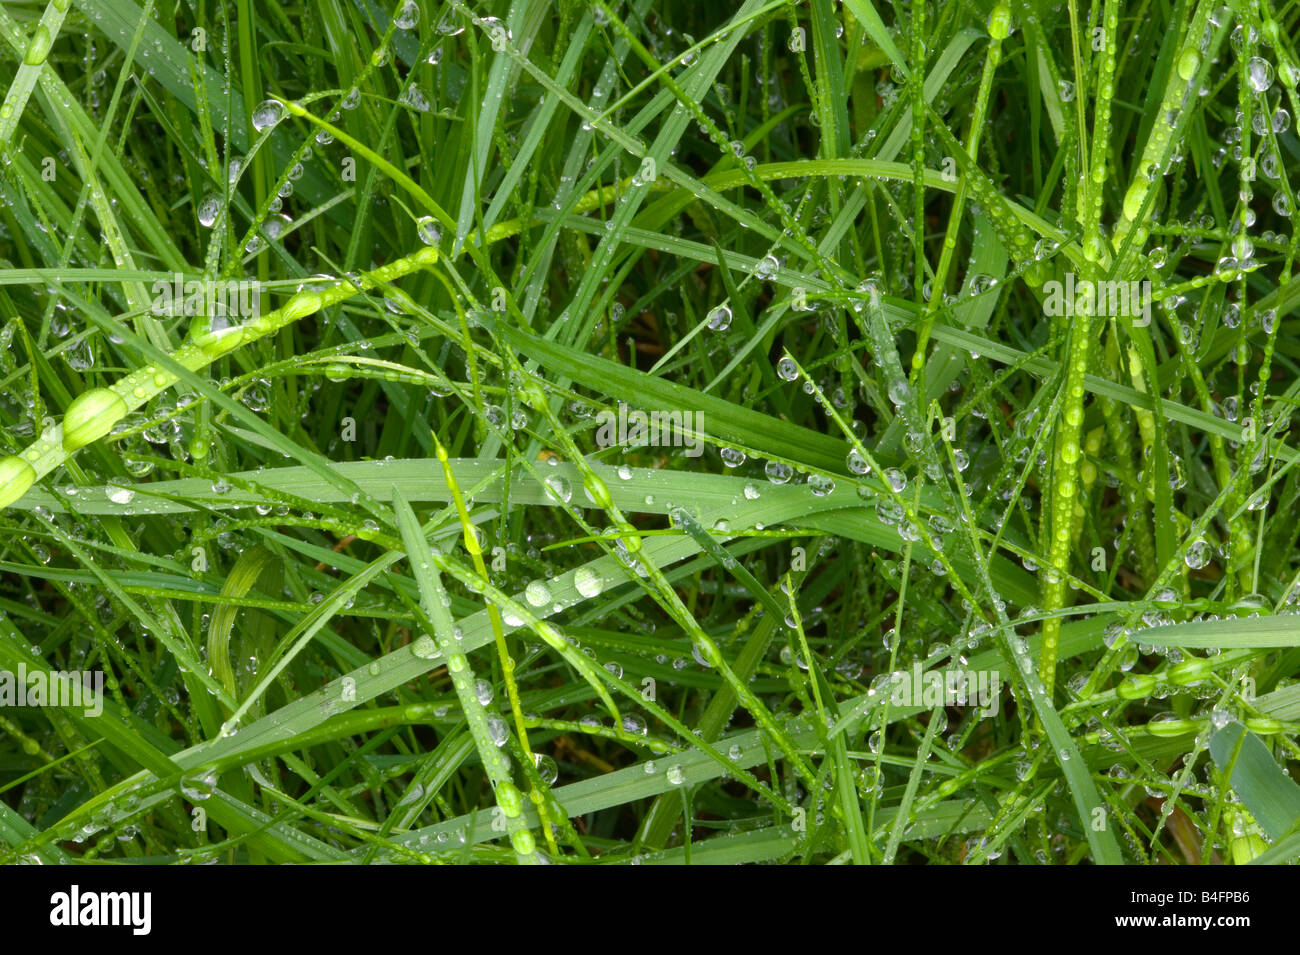 Close up of droplets on wet green grass - Stock Image